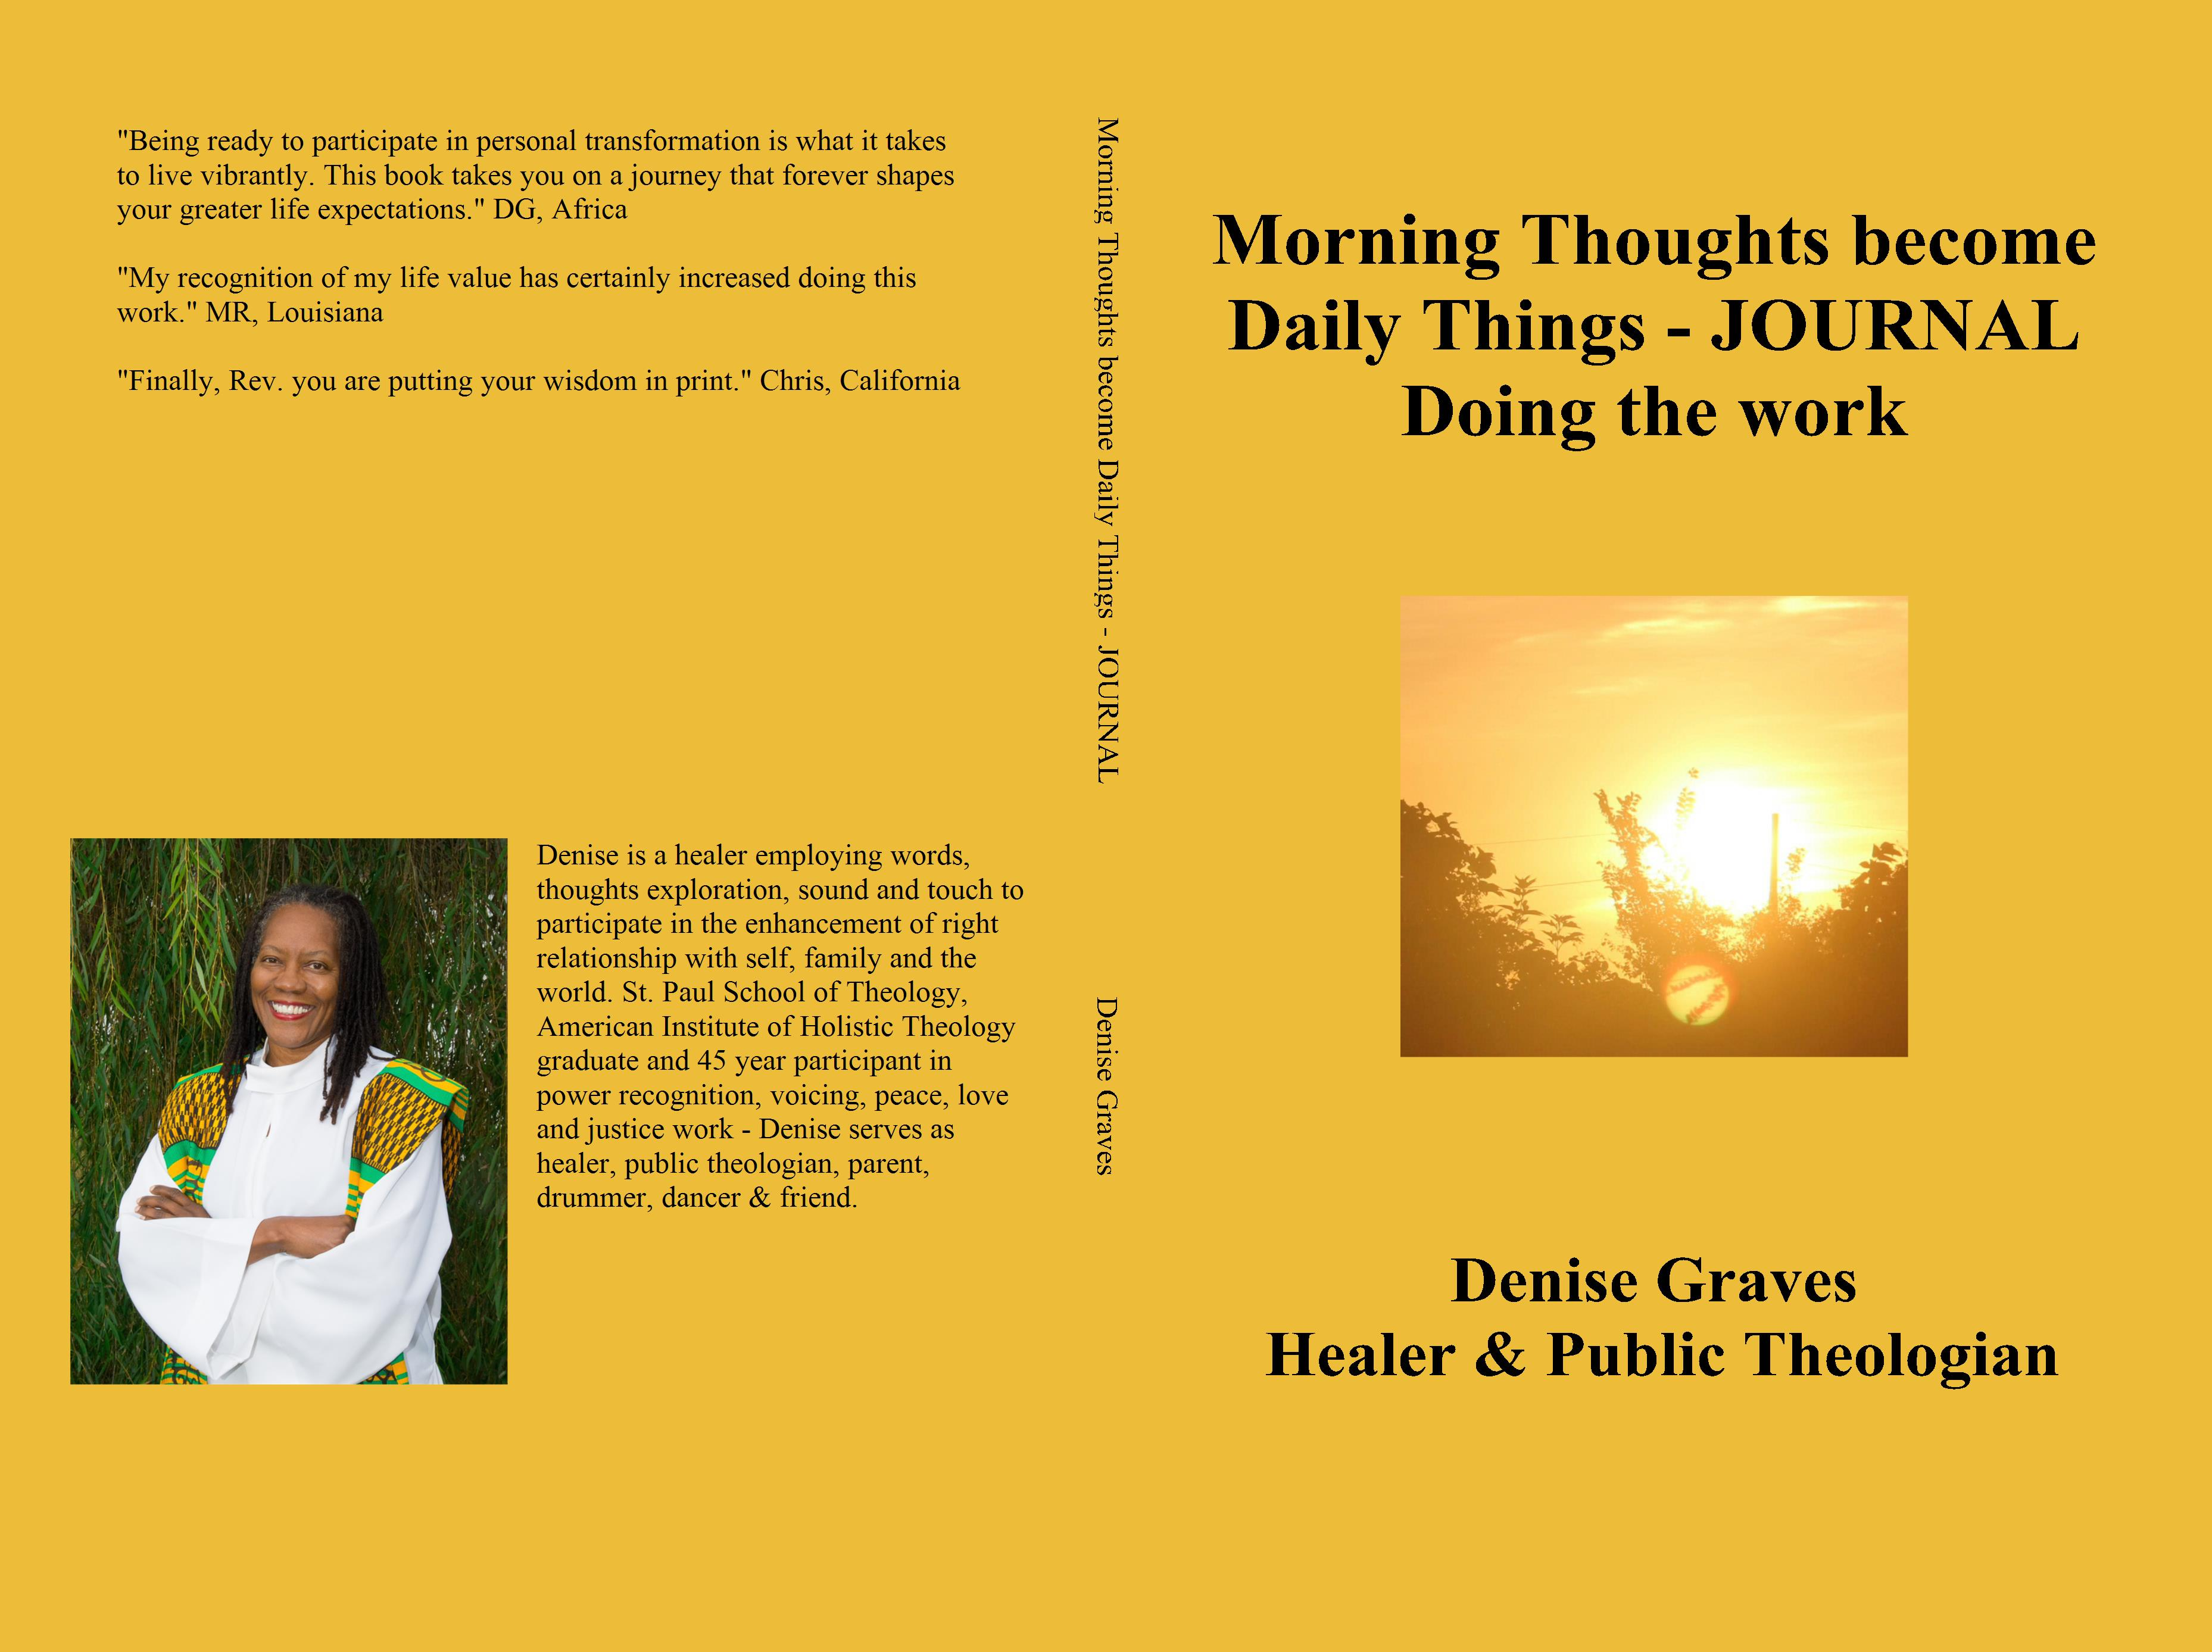 Morning Thoughts become Daily Things - JOURNAL Doing the work cover image